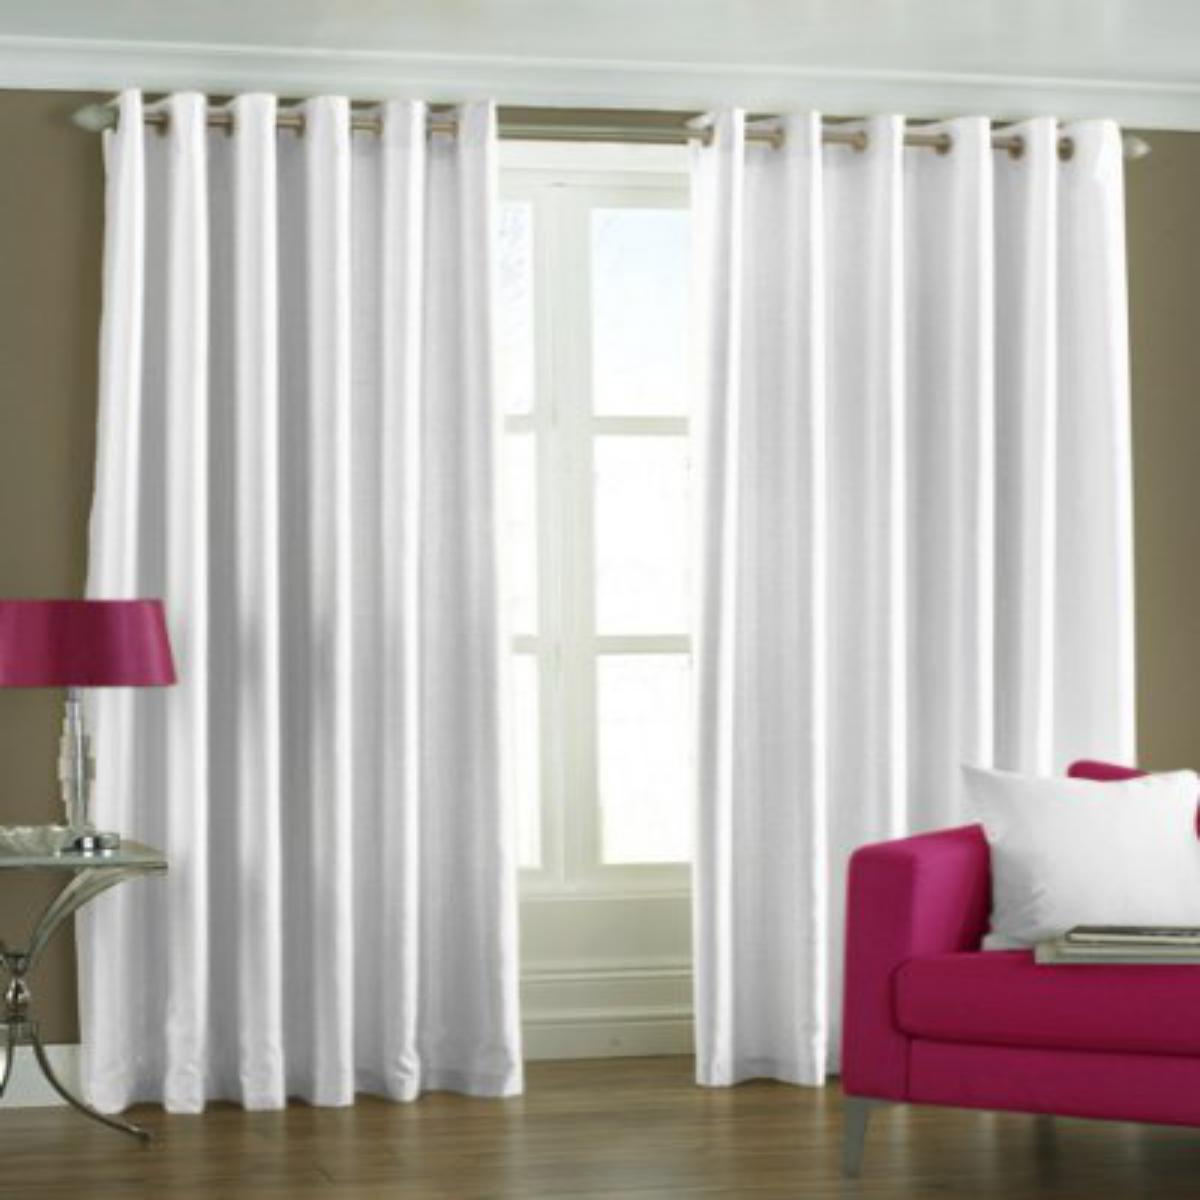 IndianOnlineMall Plain Single crush curtain(4x9ft)